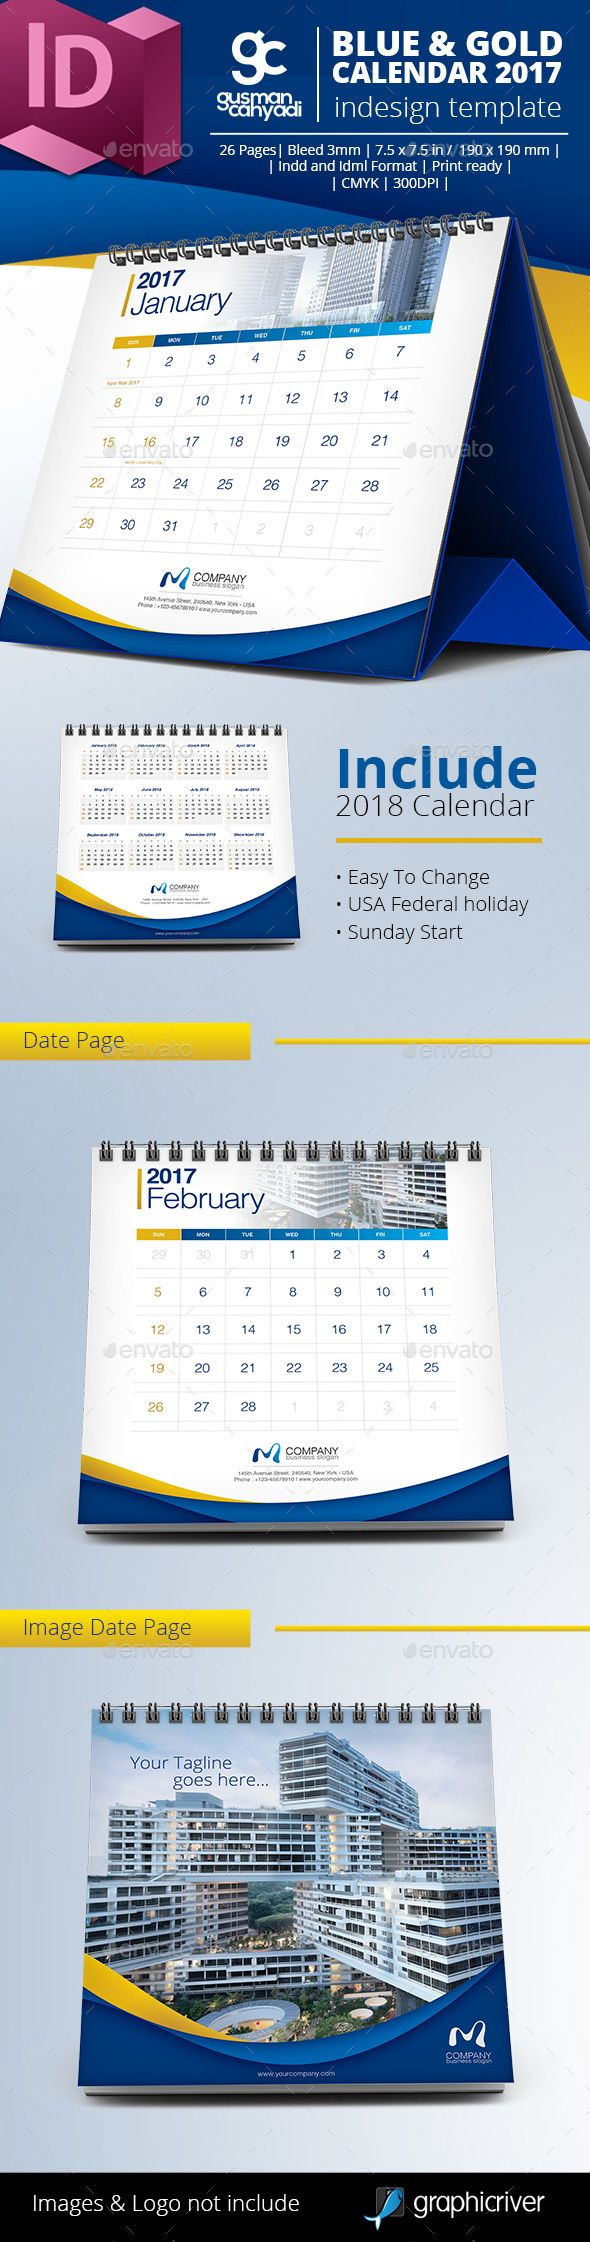 Blue & Gold 2017 Desk Calendar